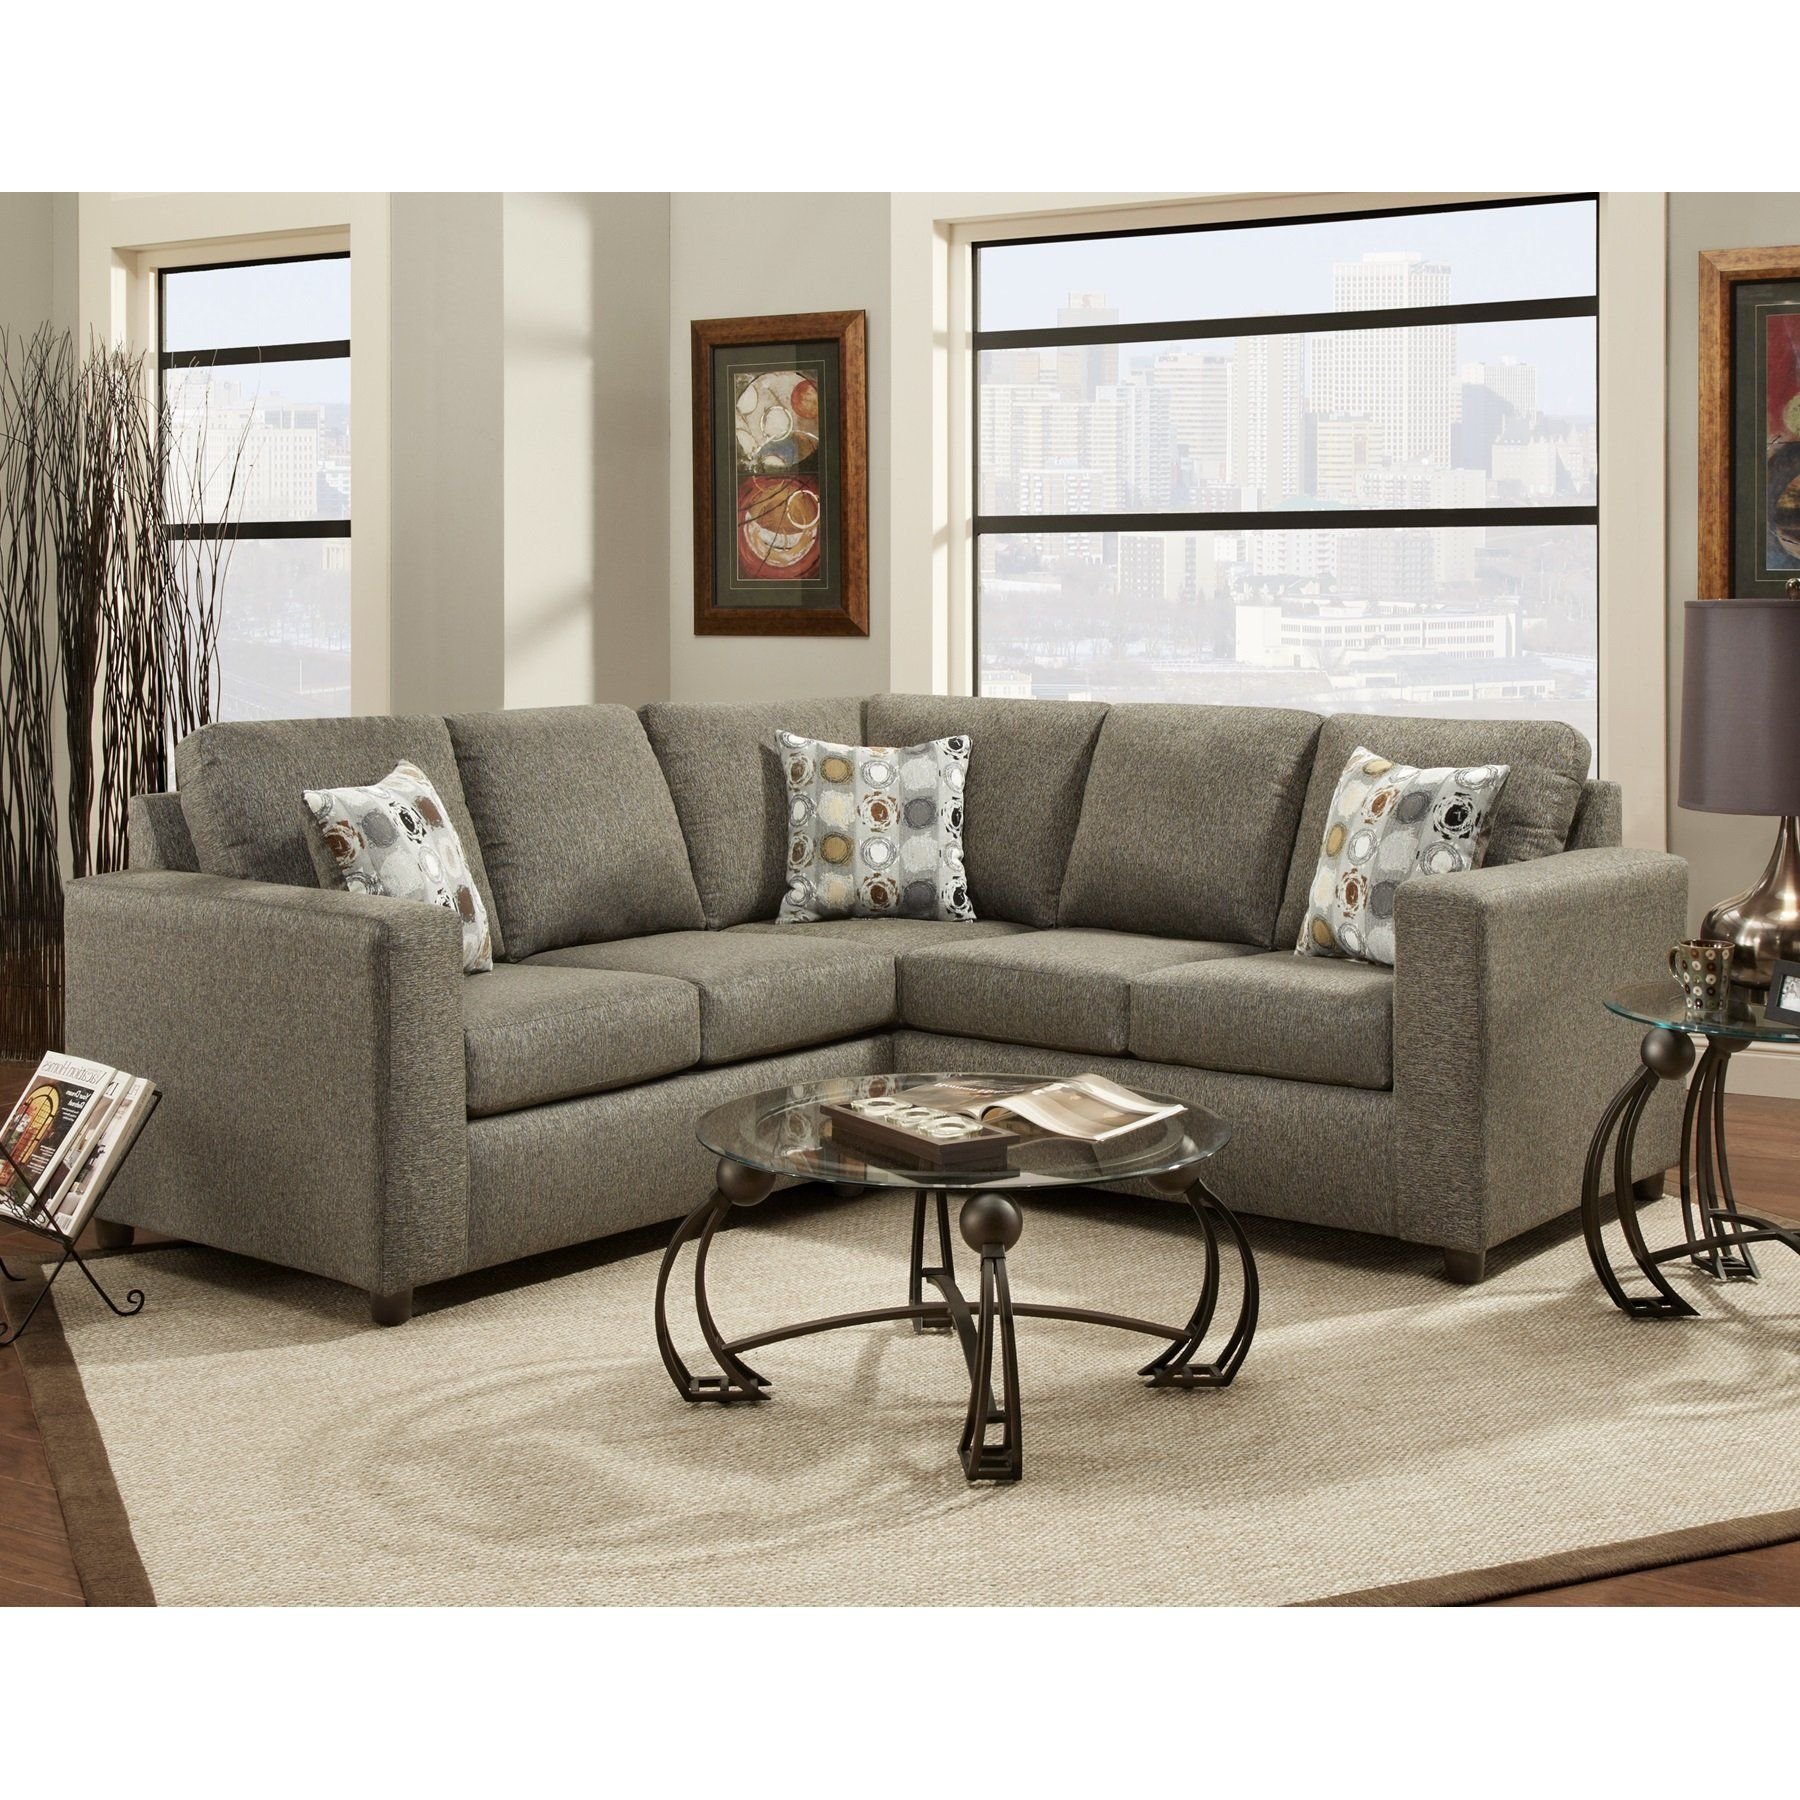 Vivid Onyx Fibric Sectional Sofa W/ 3 Pillows , Made In